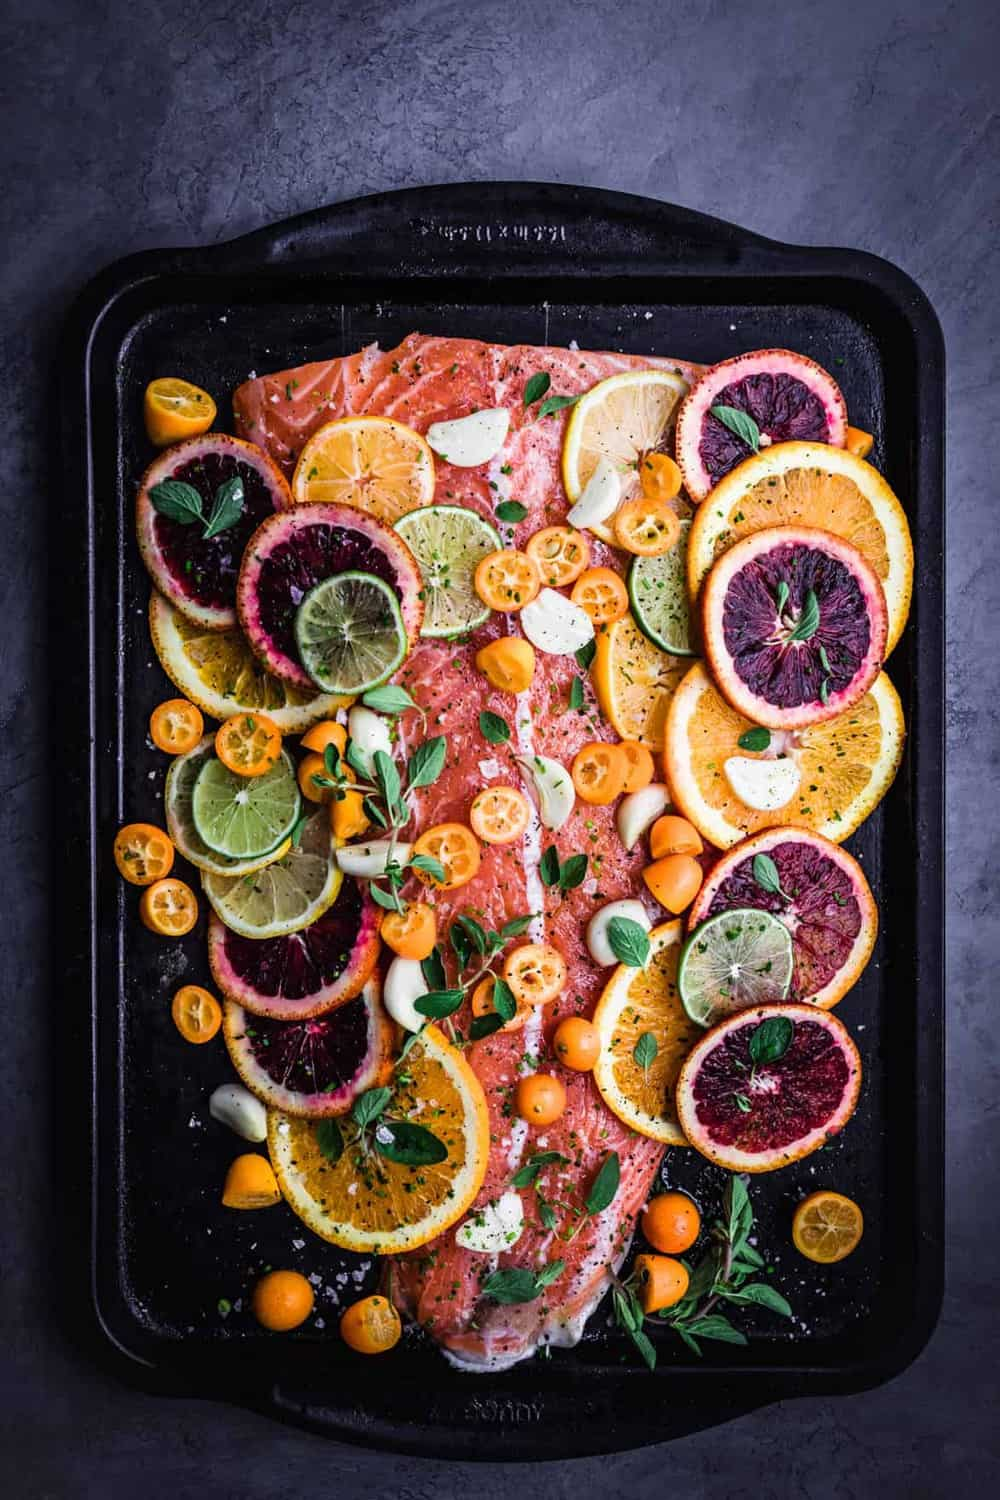 Citrus and Fresh Herb Roasted Salmon. Pre Oven with lemons, Meyer lemons, limes, blood oranges, oranges, kumquats, garlic and oregano on the salmon.